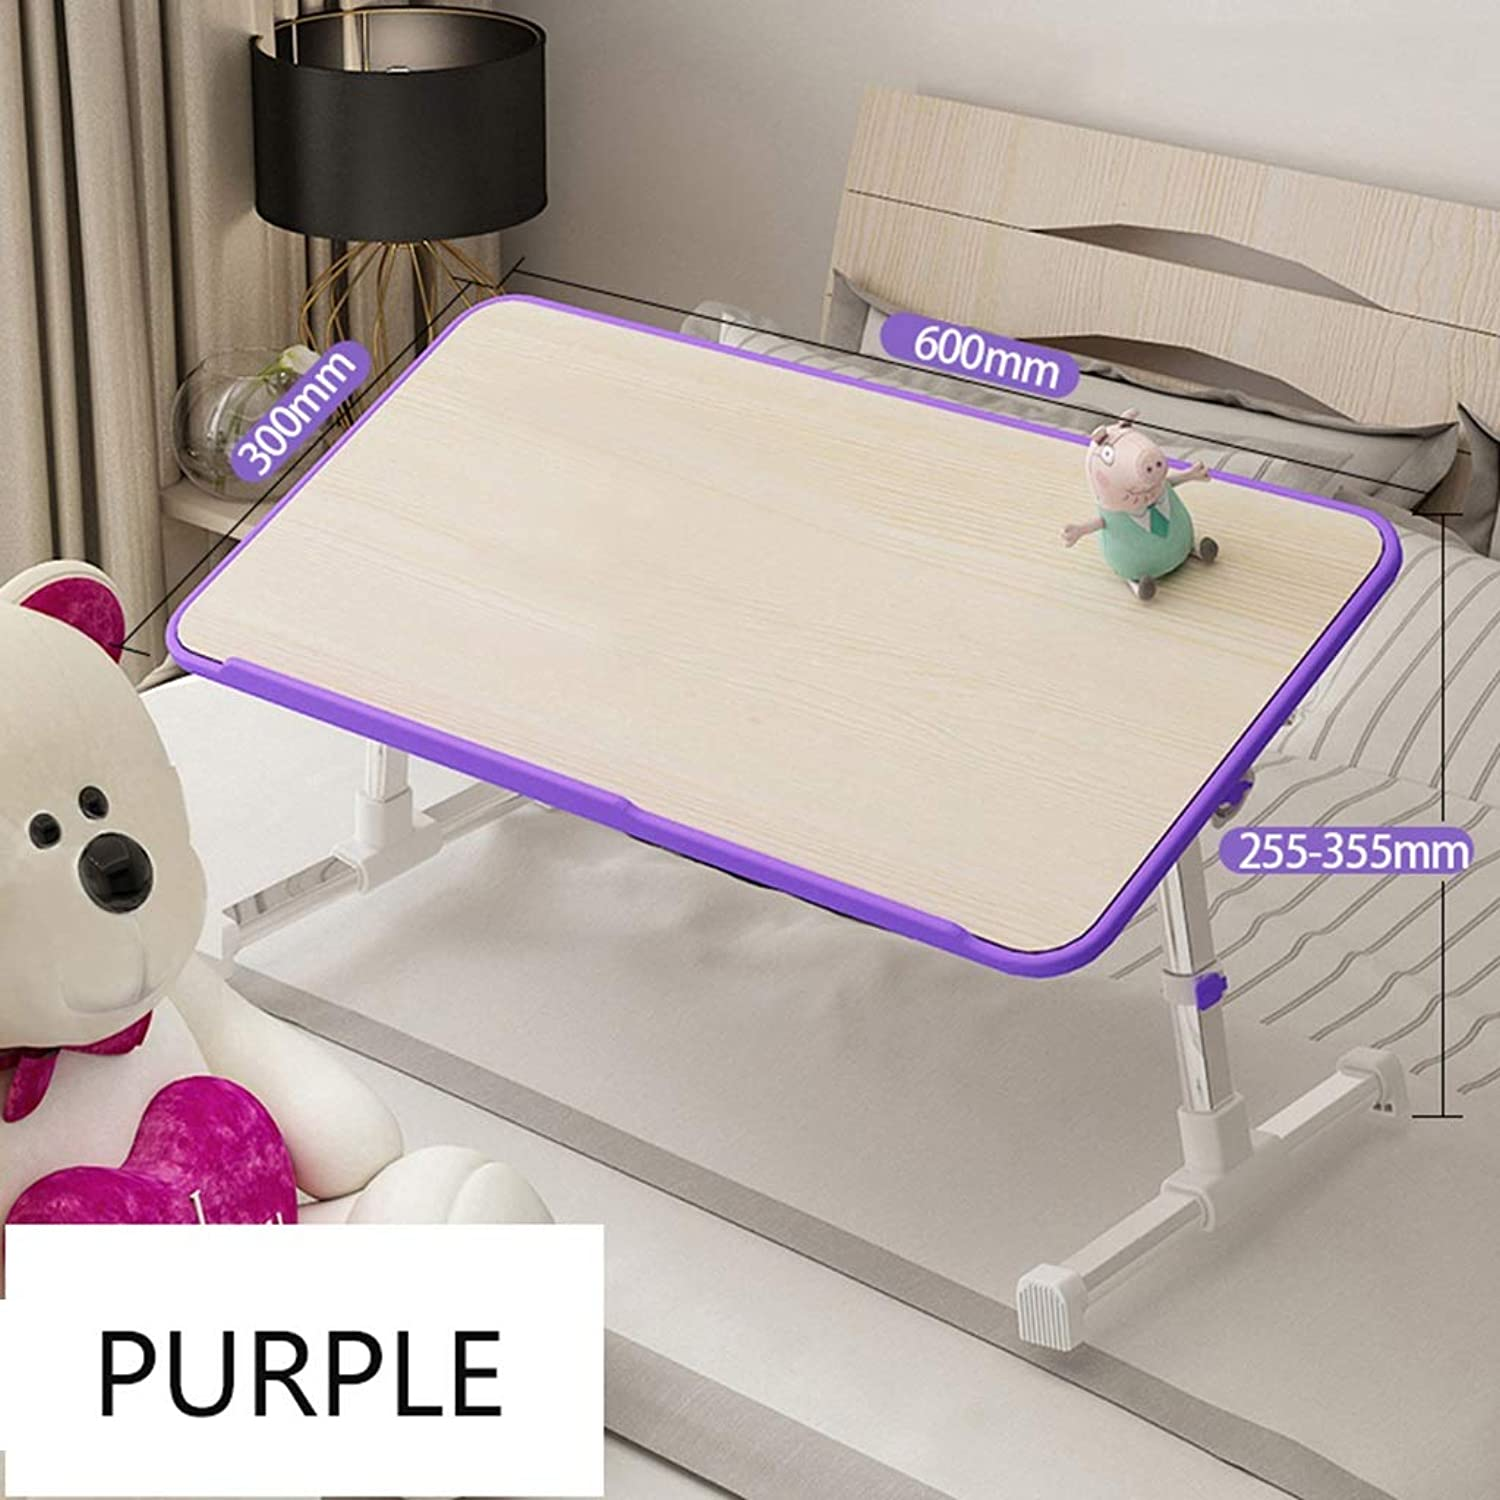 Folding Table Creative Multi-Function Bed Small Folding Table Computer Notebook Study Desk-Home Bedroom College Dormitory Dormitory (color   Purple, Size   600x300x255-355mm)